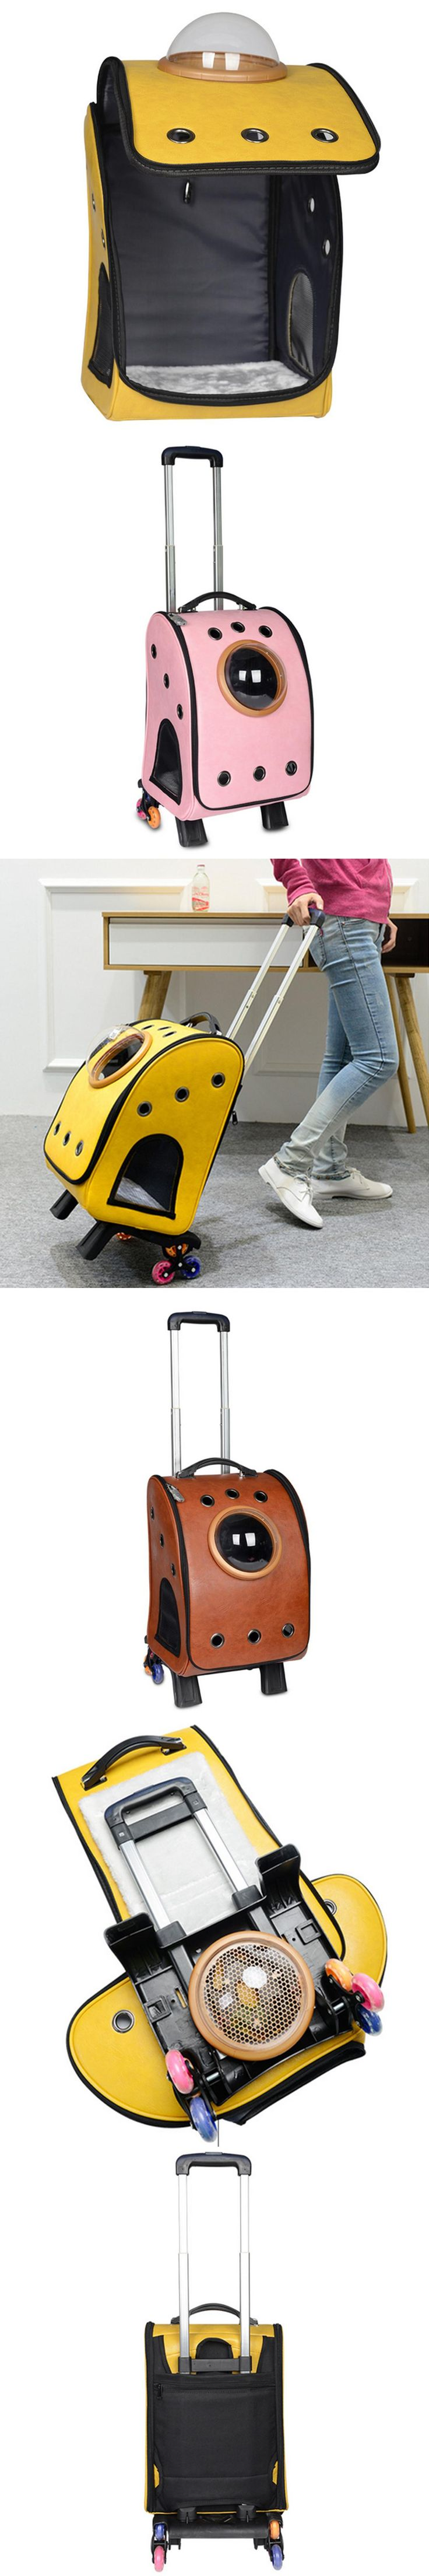 Hoopet 1pcs Astronaut Pet PU Luggage Case puppy Dog Cat Carrier Breathable Pet Travel Bag with Six Wheel